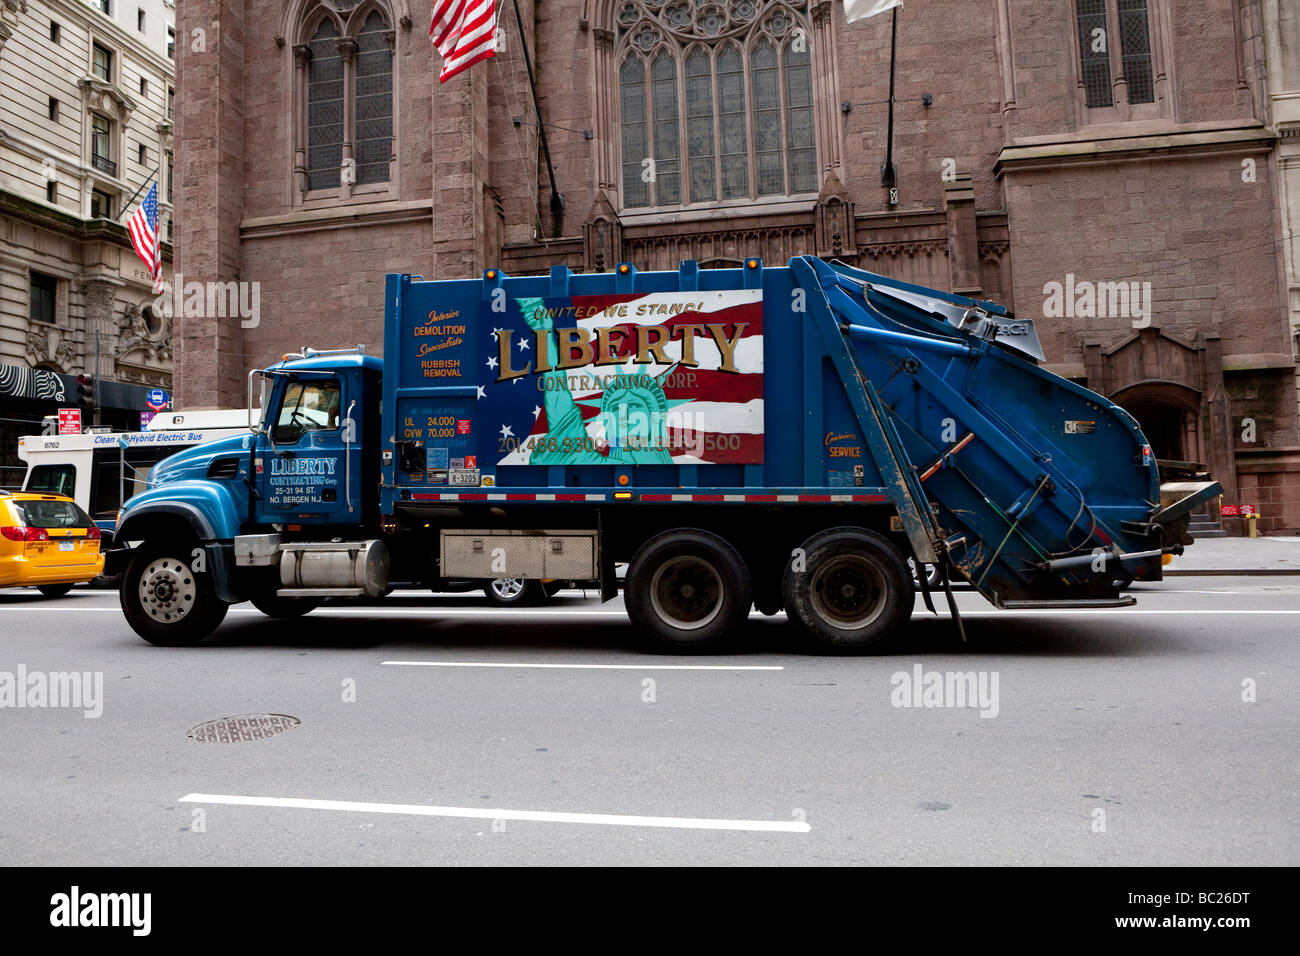 Garbage car in NYC - Stock Image